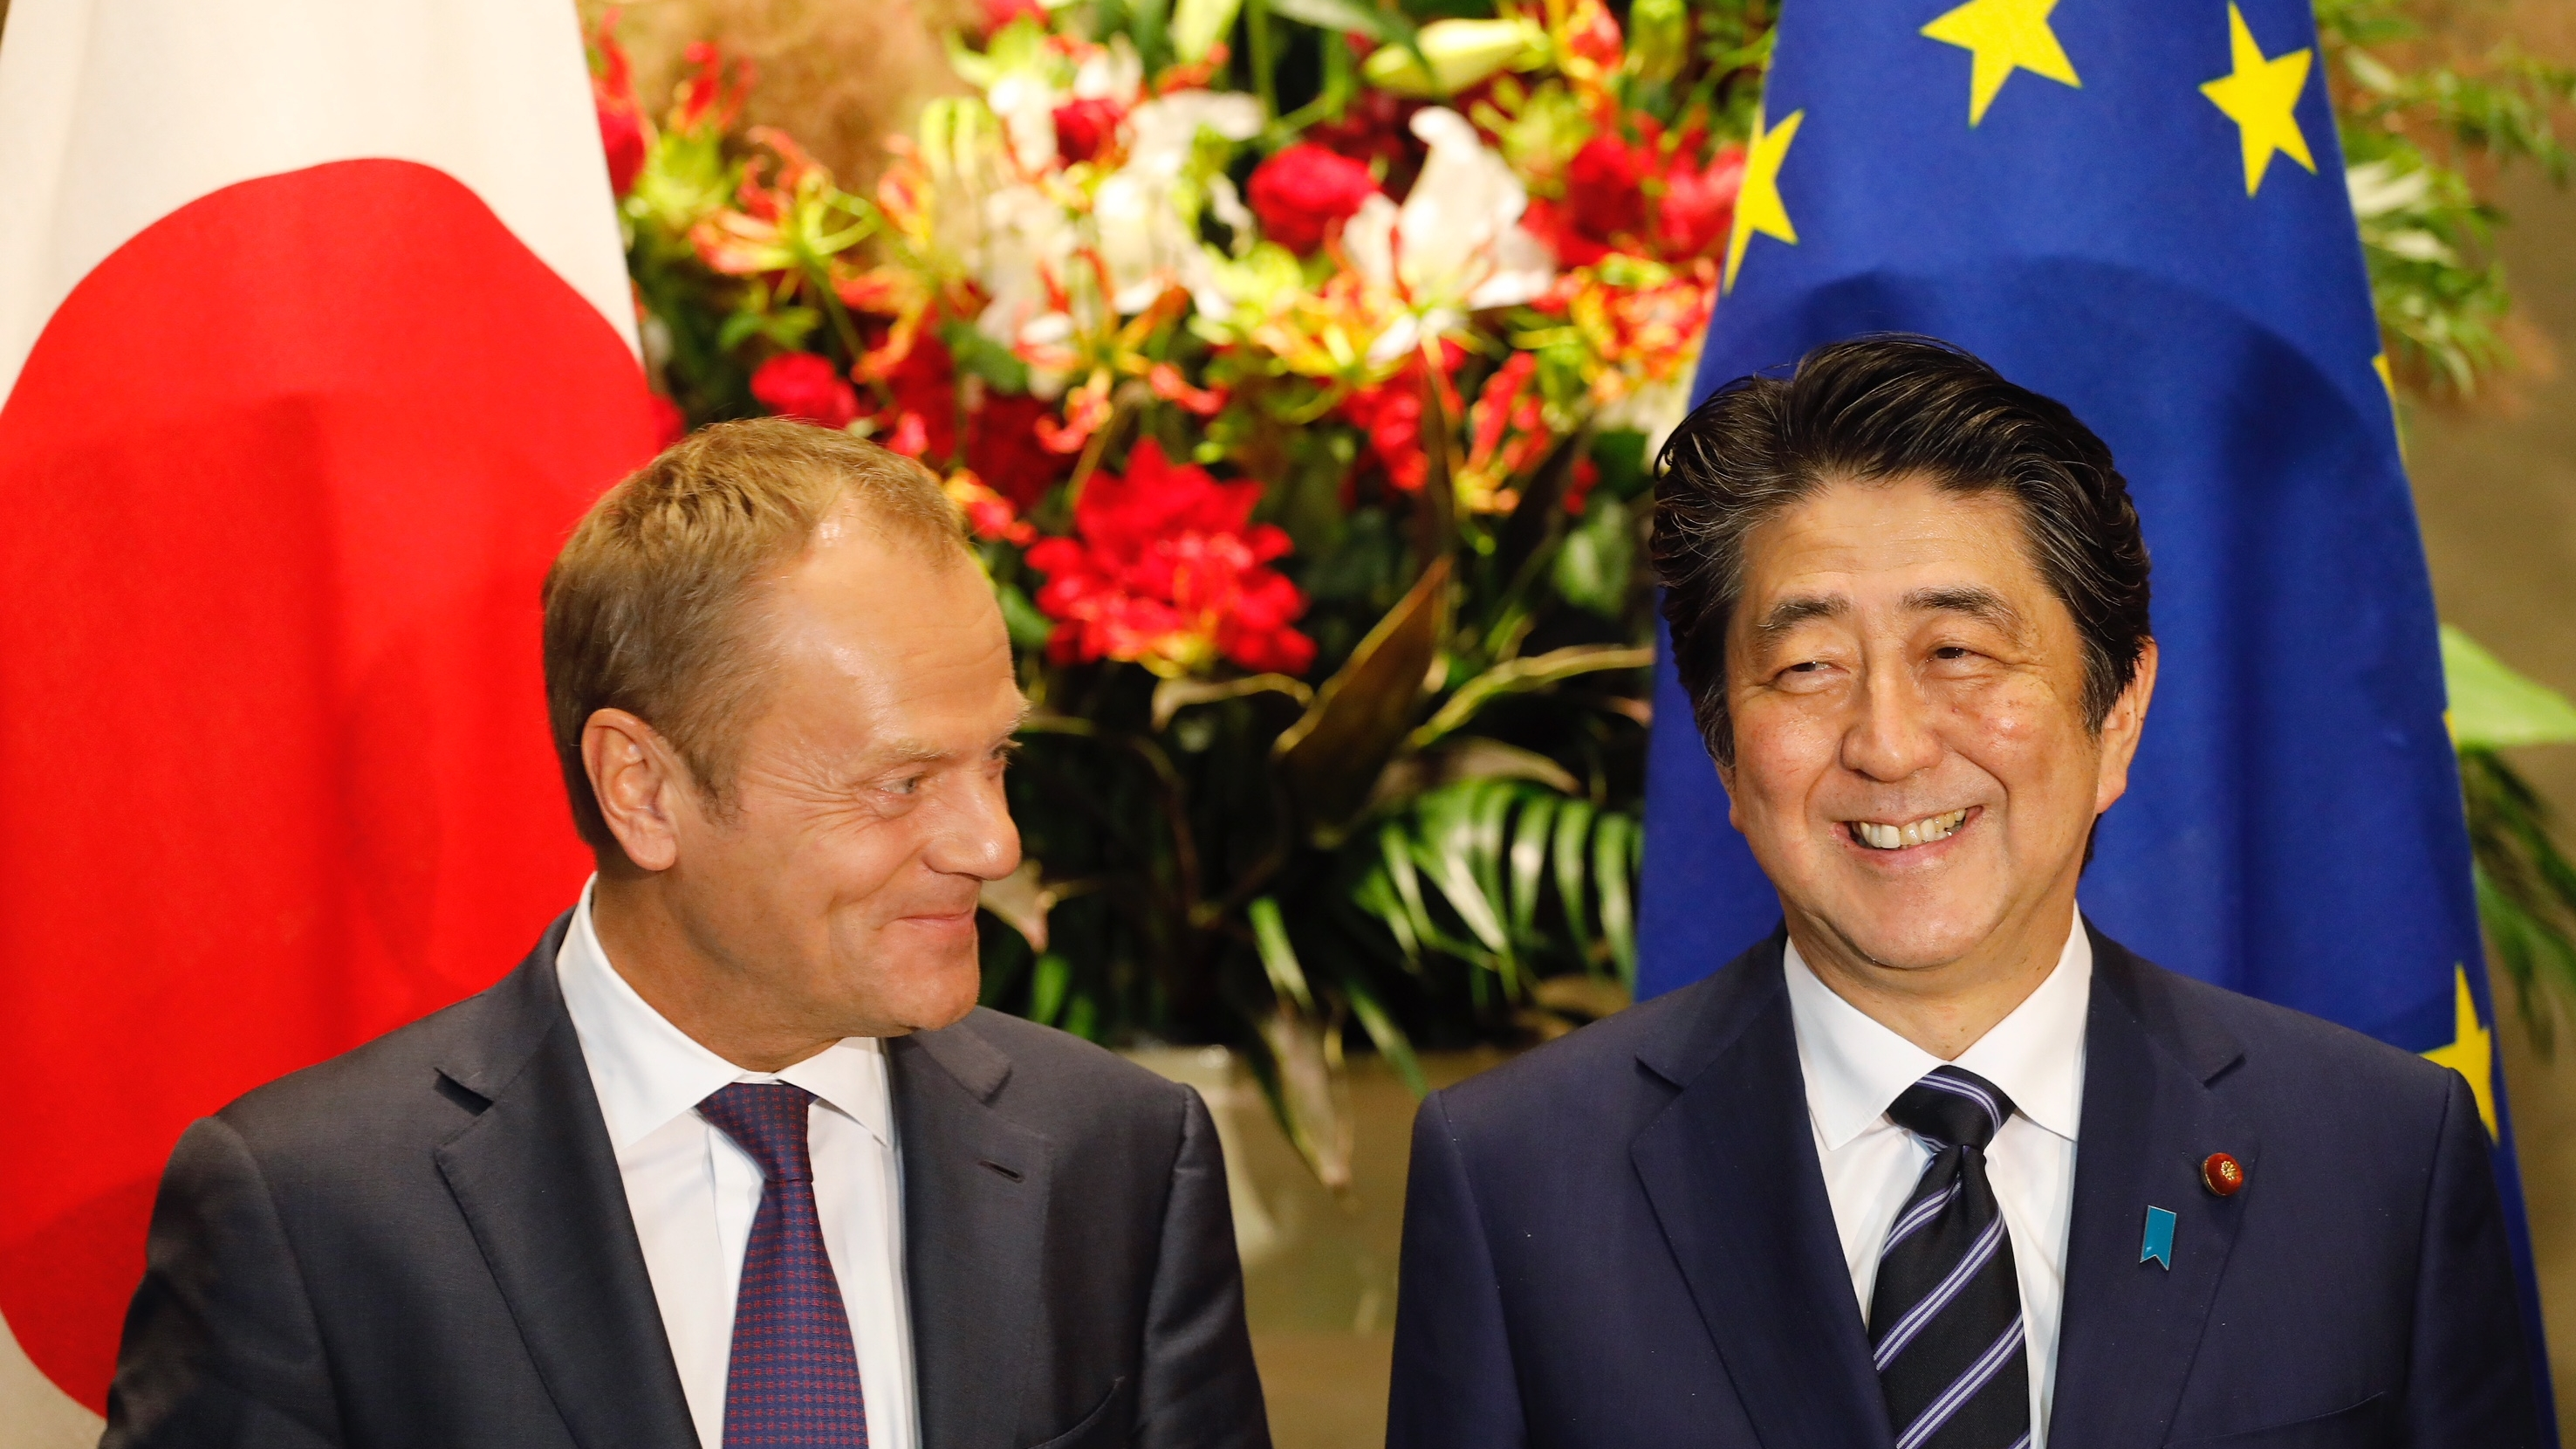 18/7/2018 - signing Trade agreement by Donald Tusk, President of European Council, and PM of Japan, Shinzo Abe